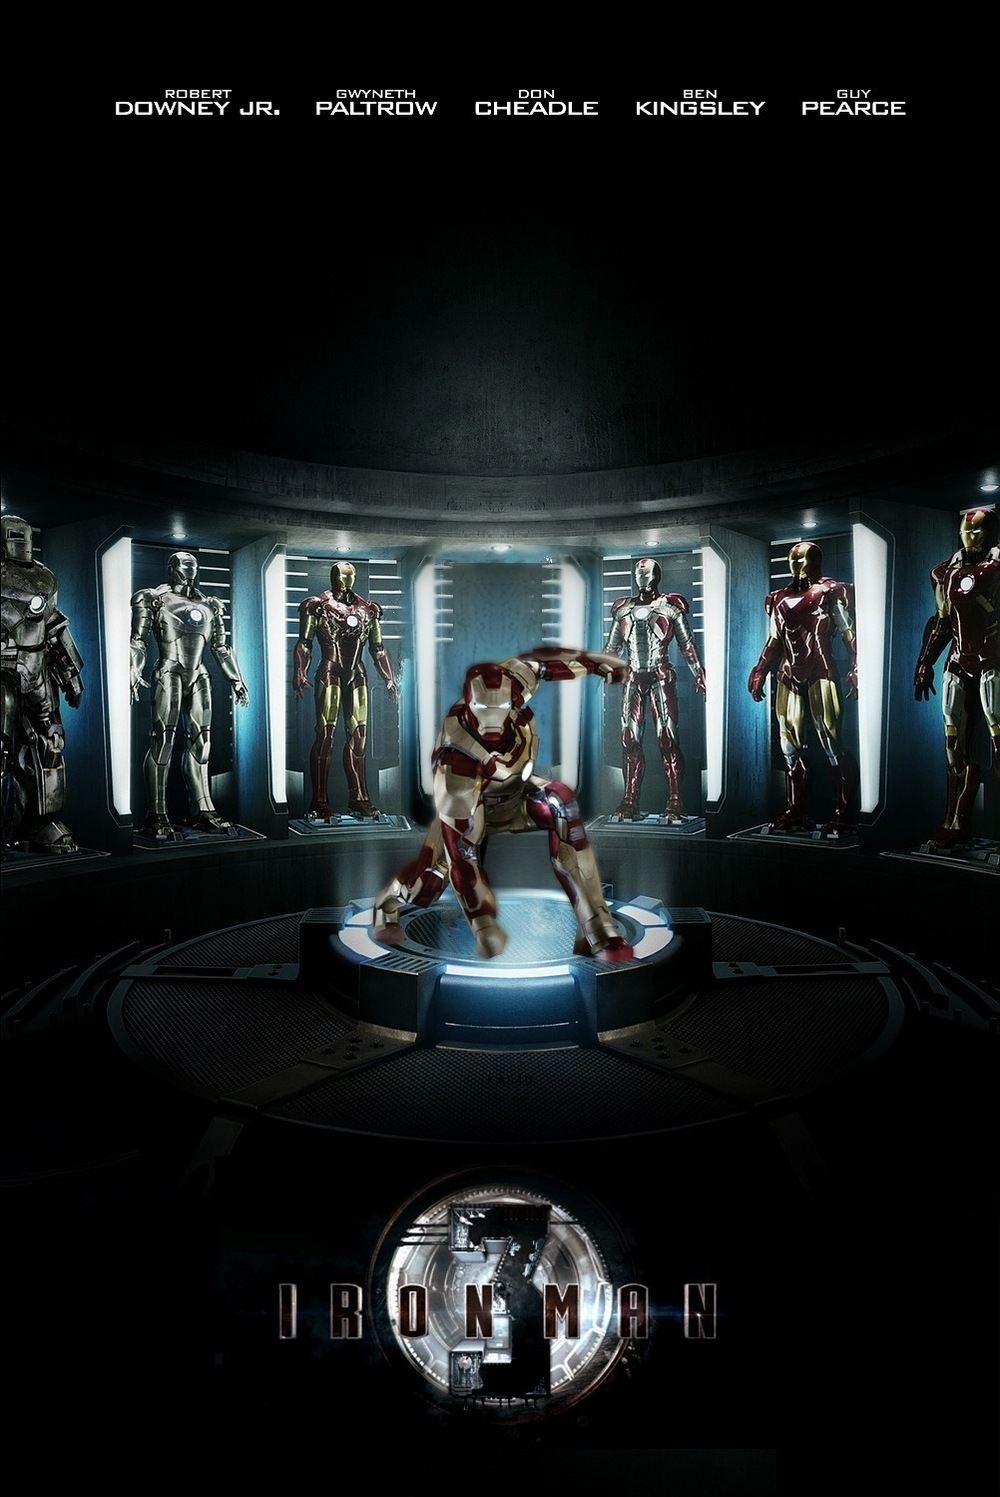 N4nation: 'Iron Man 3' Gets Release Date, Disney to Distribute It